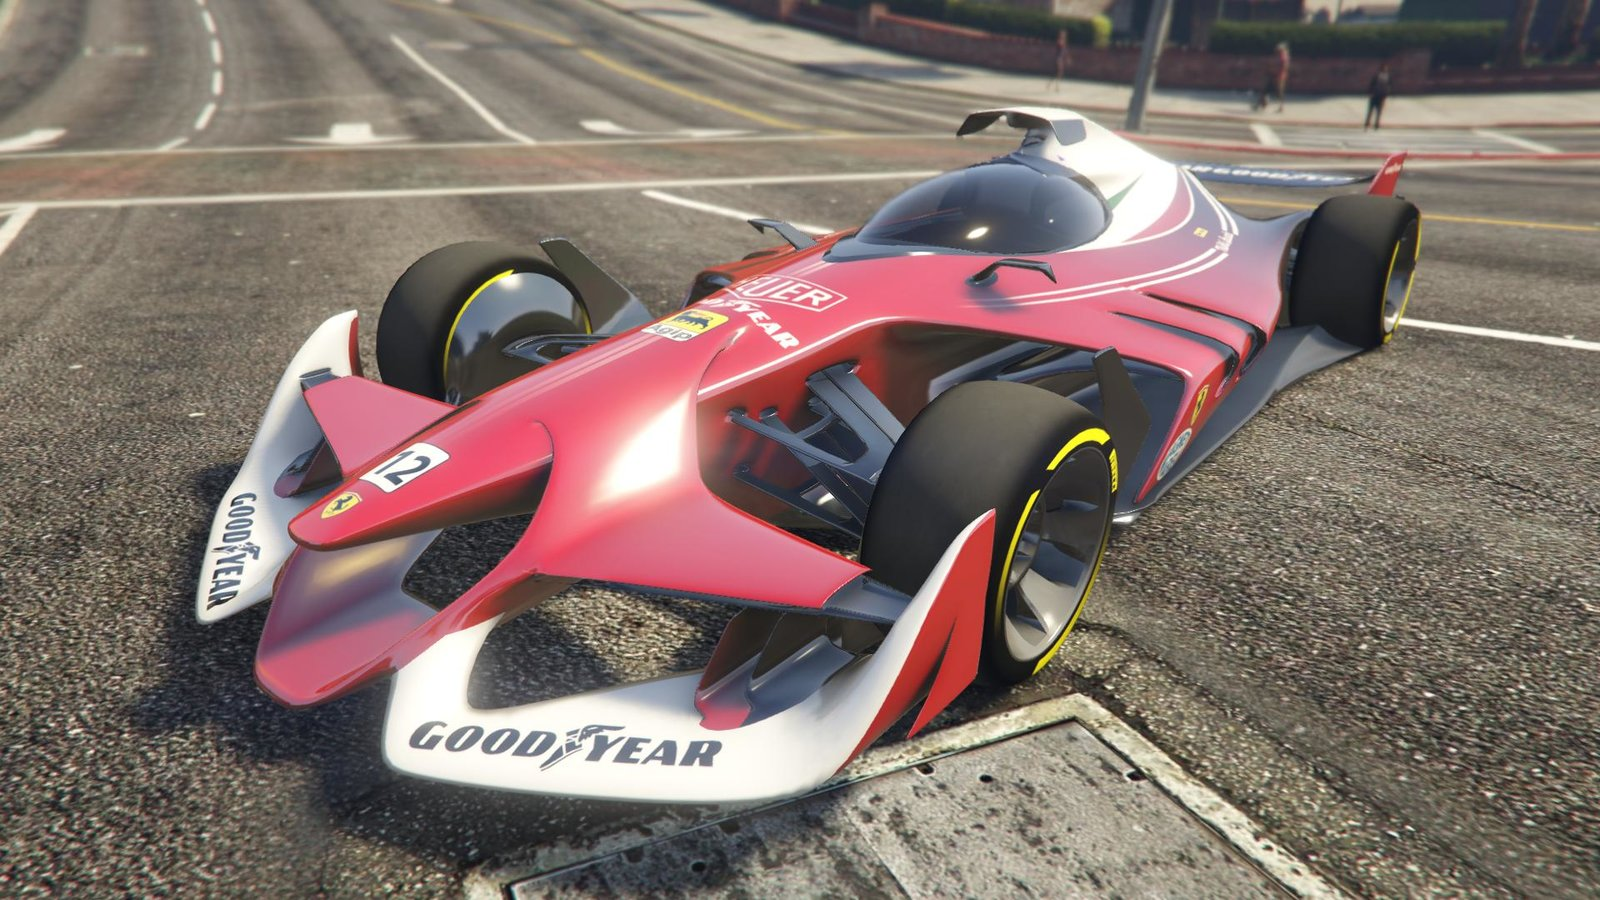 ferrari concept f1 vehicules pour gta v sur gta modding. Black Bedroom Furniture Sets. Home Design Ideas